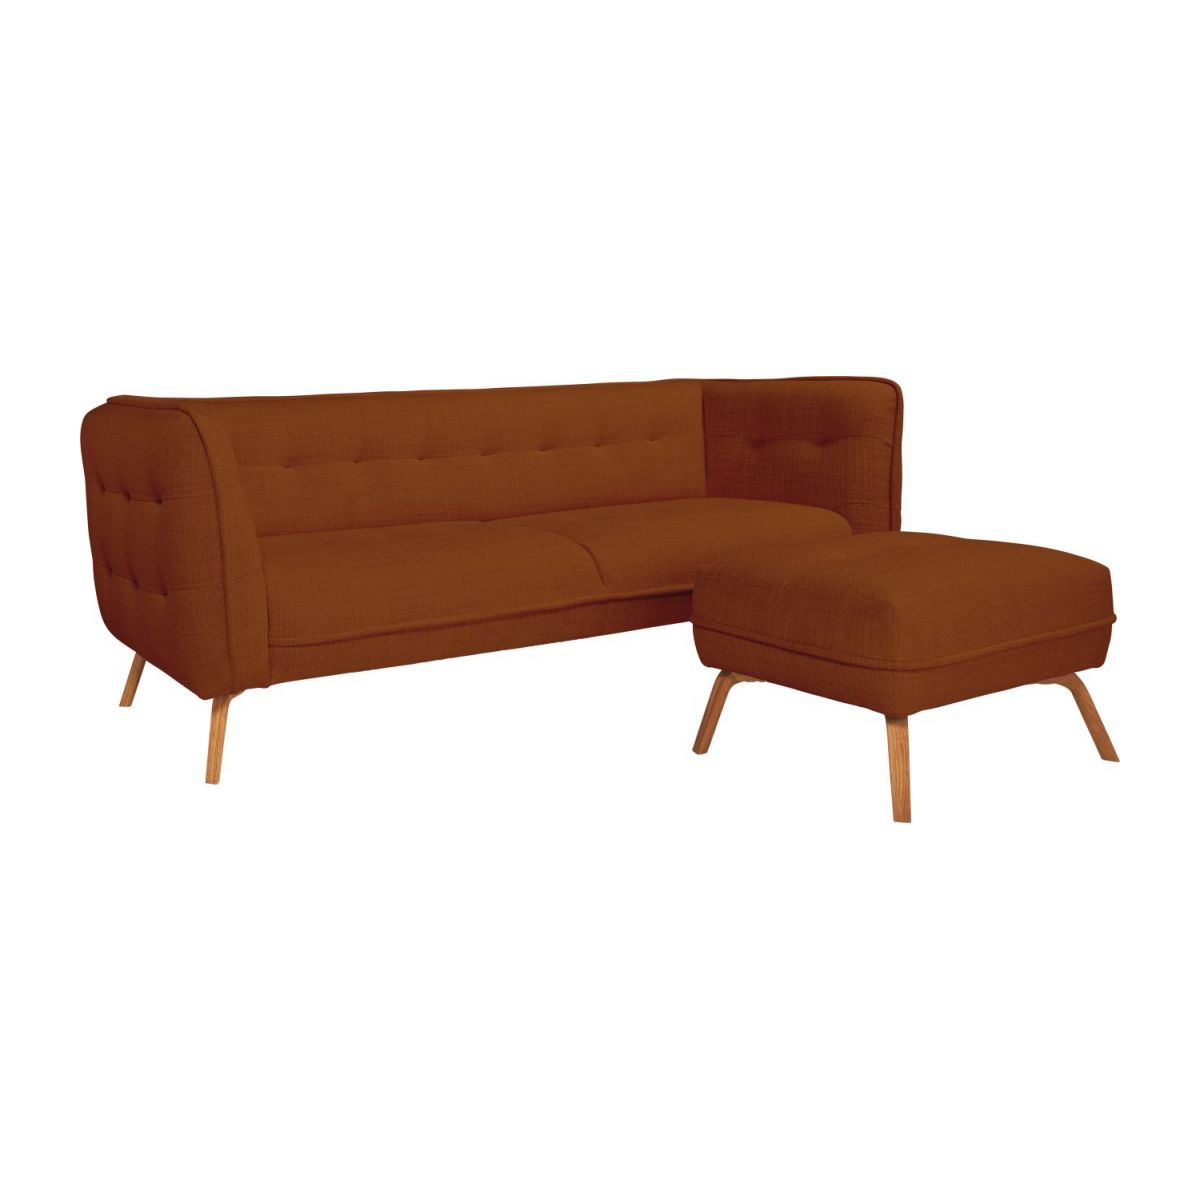 3 seater sofa in Fasoli fabric, warm red rock and oak legs n°9